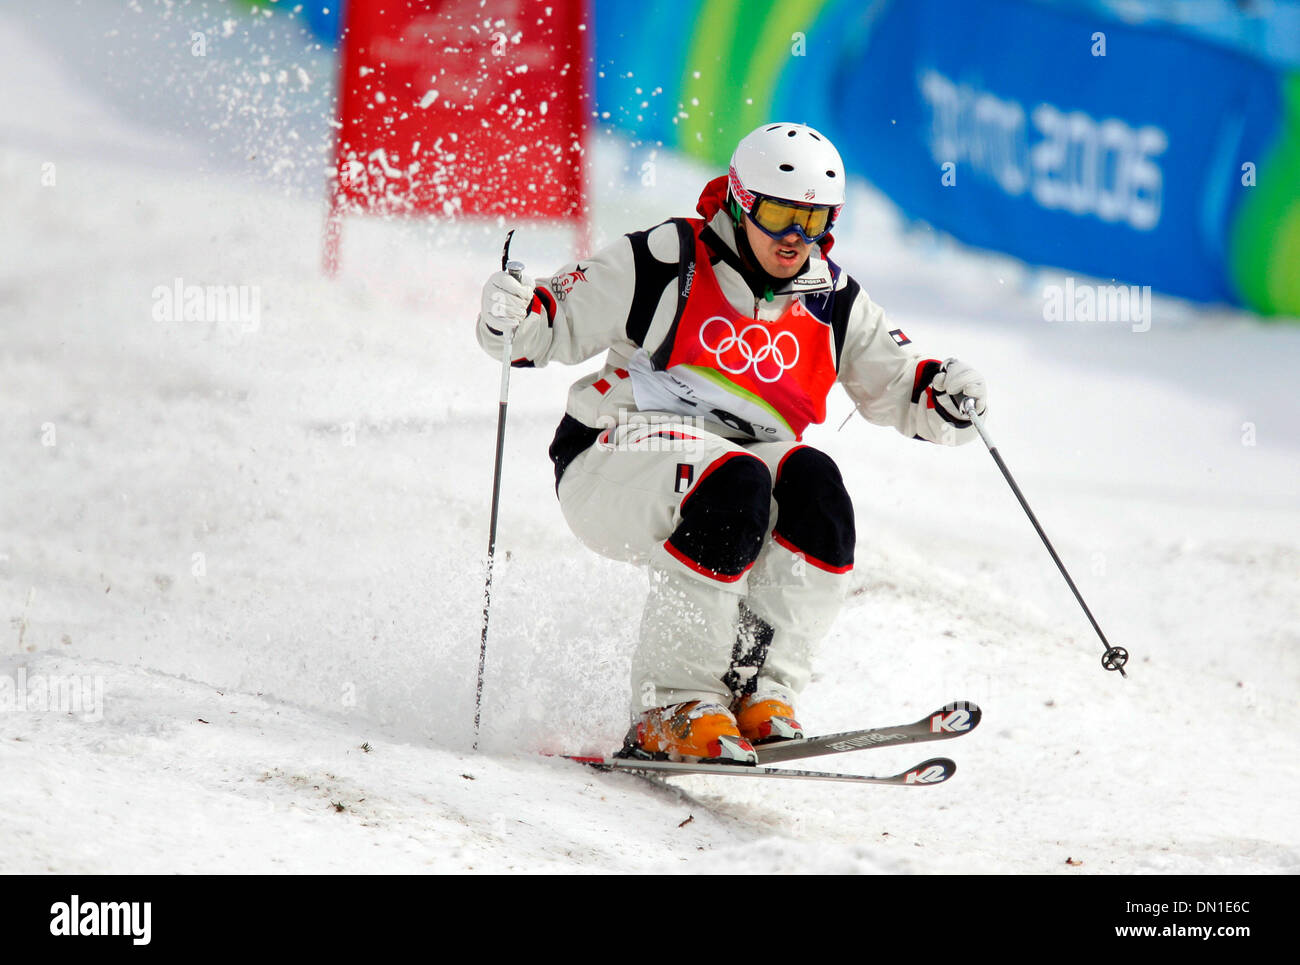 Feb 15 2006 Sauze DOulx ITALY TORINO WINTER OLYMPICS TRAVIS CABRAL Of The United States Competes In Qualifying Run Freestyle Skiing